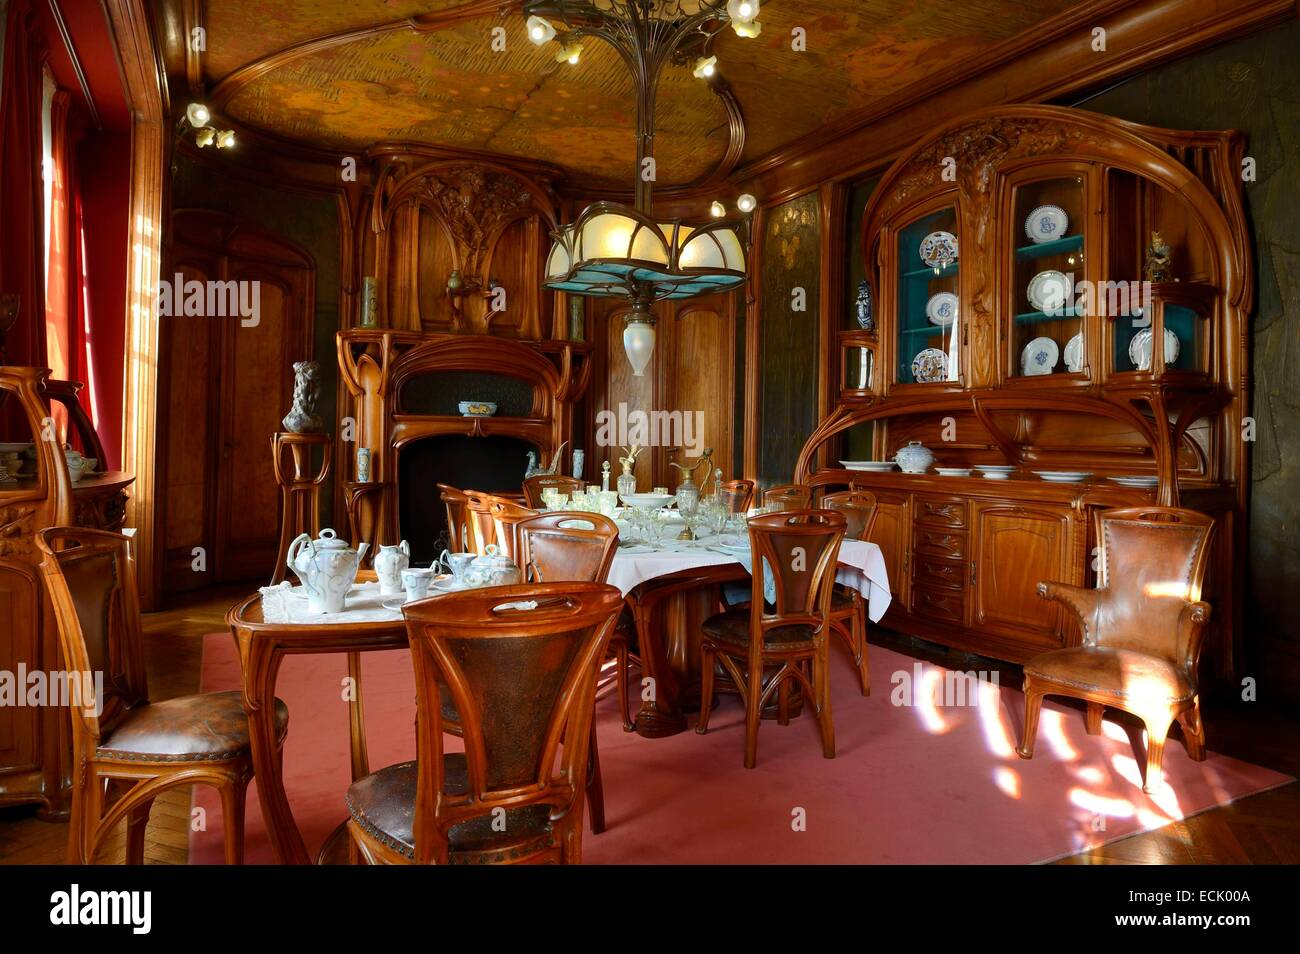 France Meurthe Et Moselle Nancy Ecole De Museum The Art Nouveau Dining Room Of Masson 1903 1906 Furniture And Woodwork By Eugene Vallin